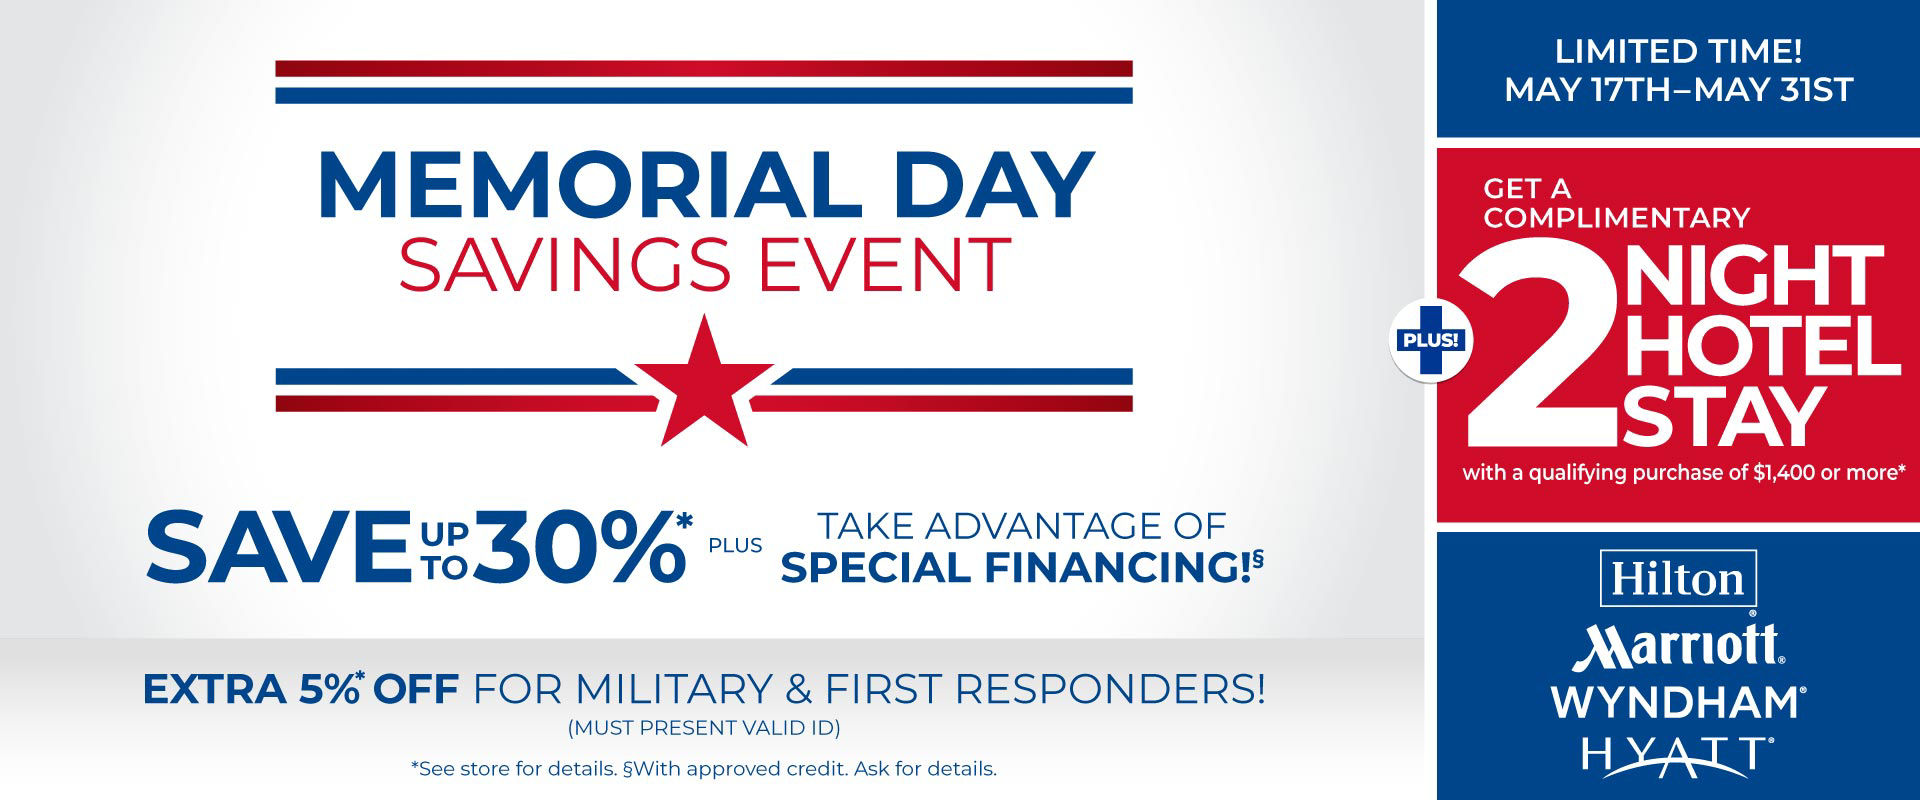 Memorial Day Savings & Your Purchase Could get you a 2 Night Stay